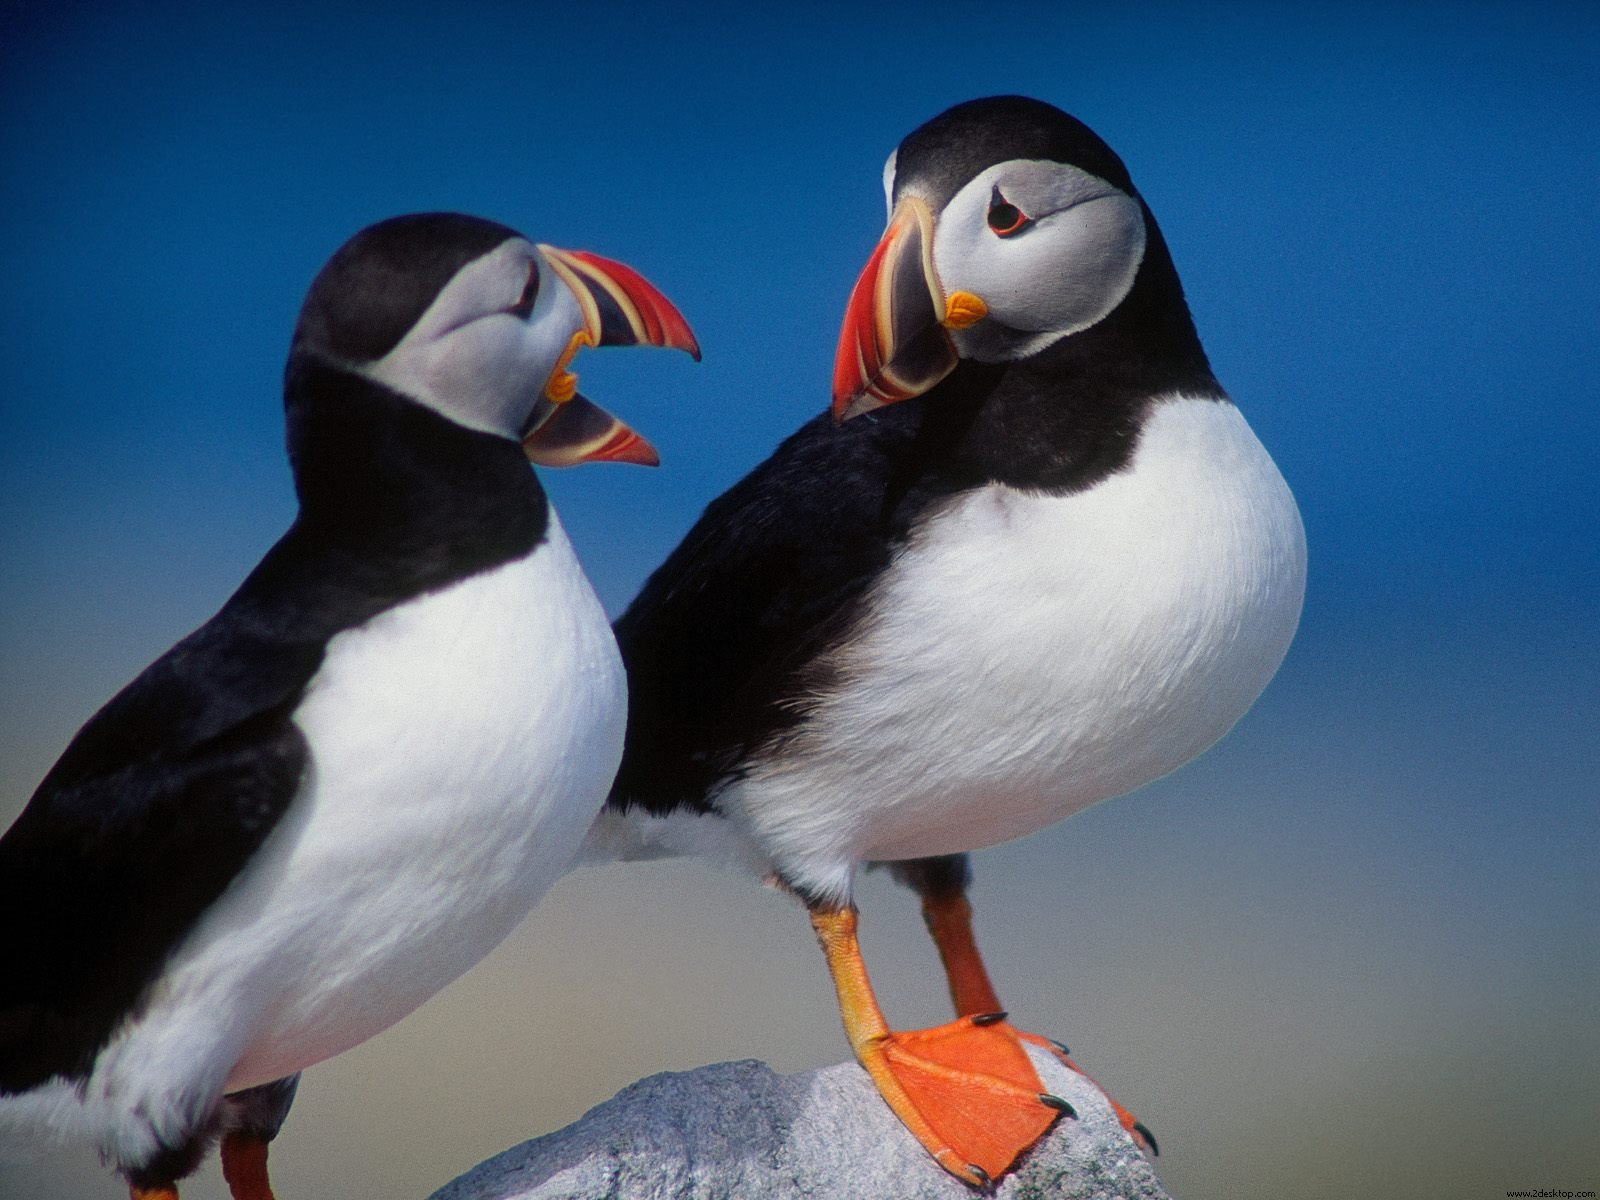 A Pair of Puffins 192.47 Kb